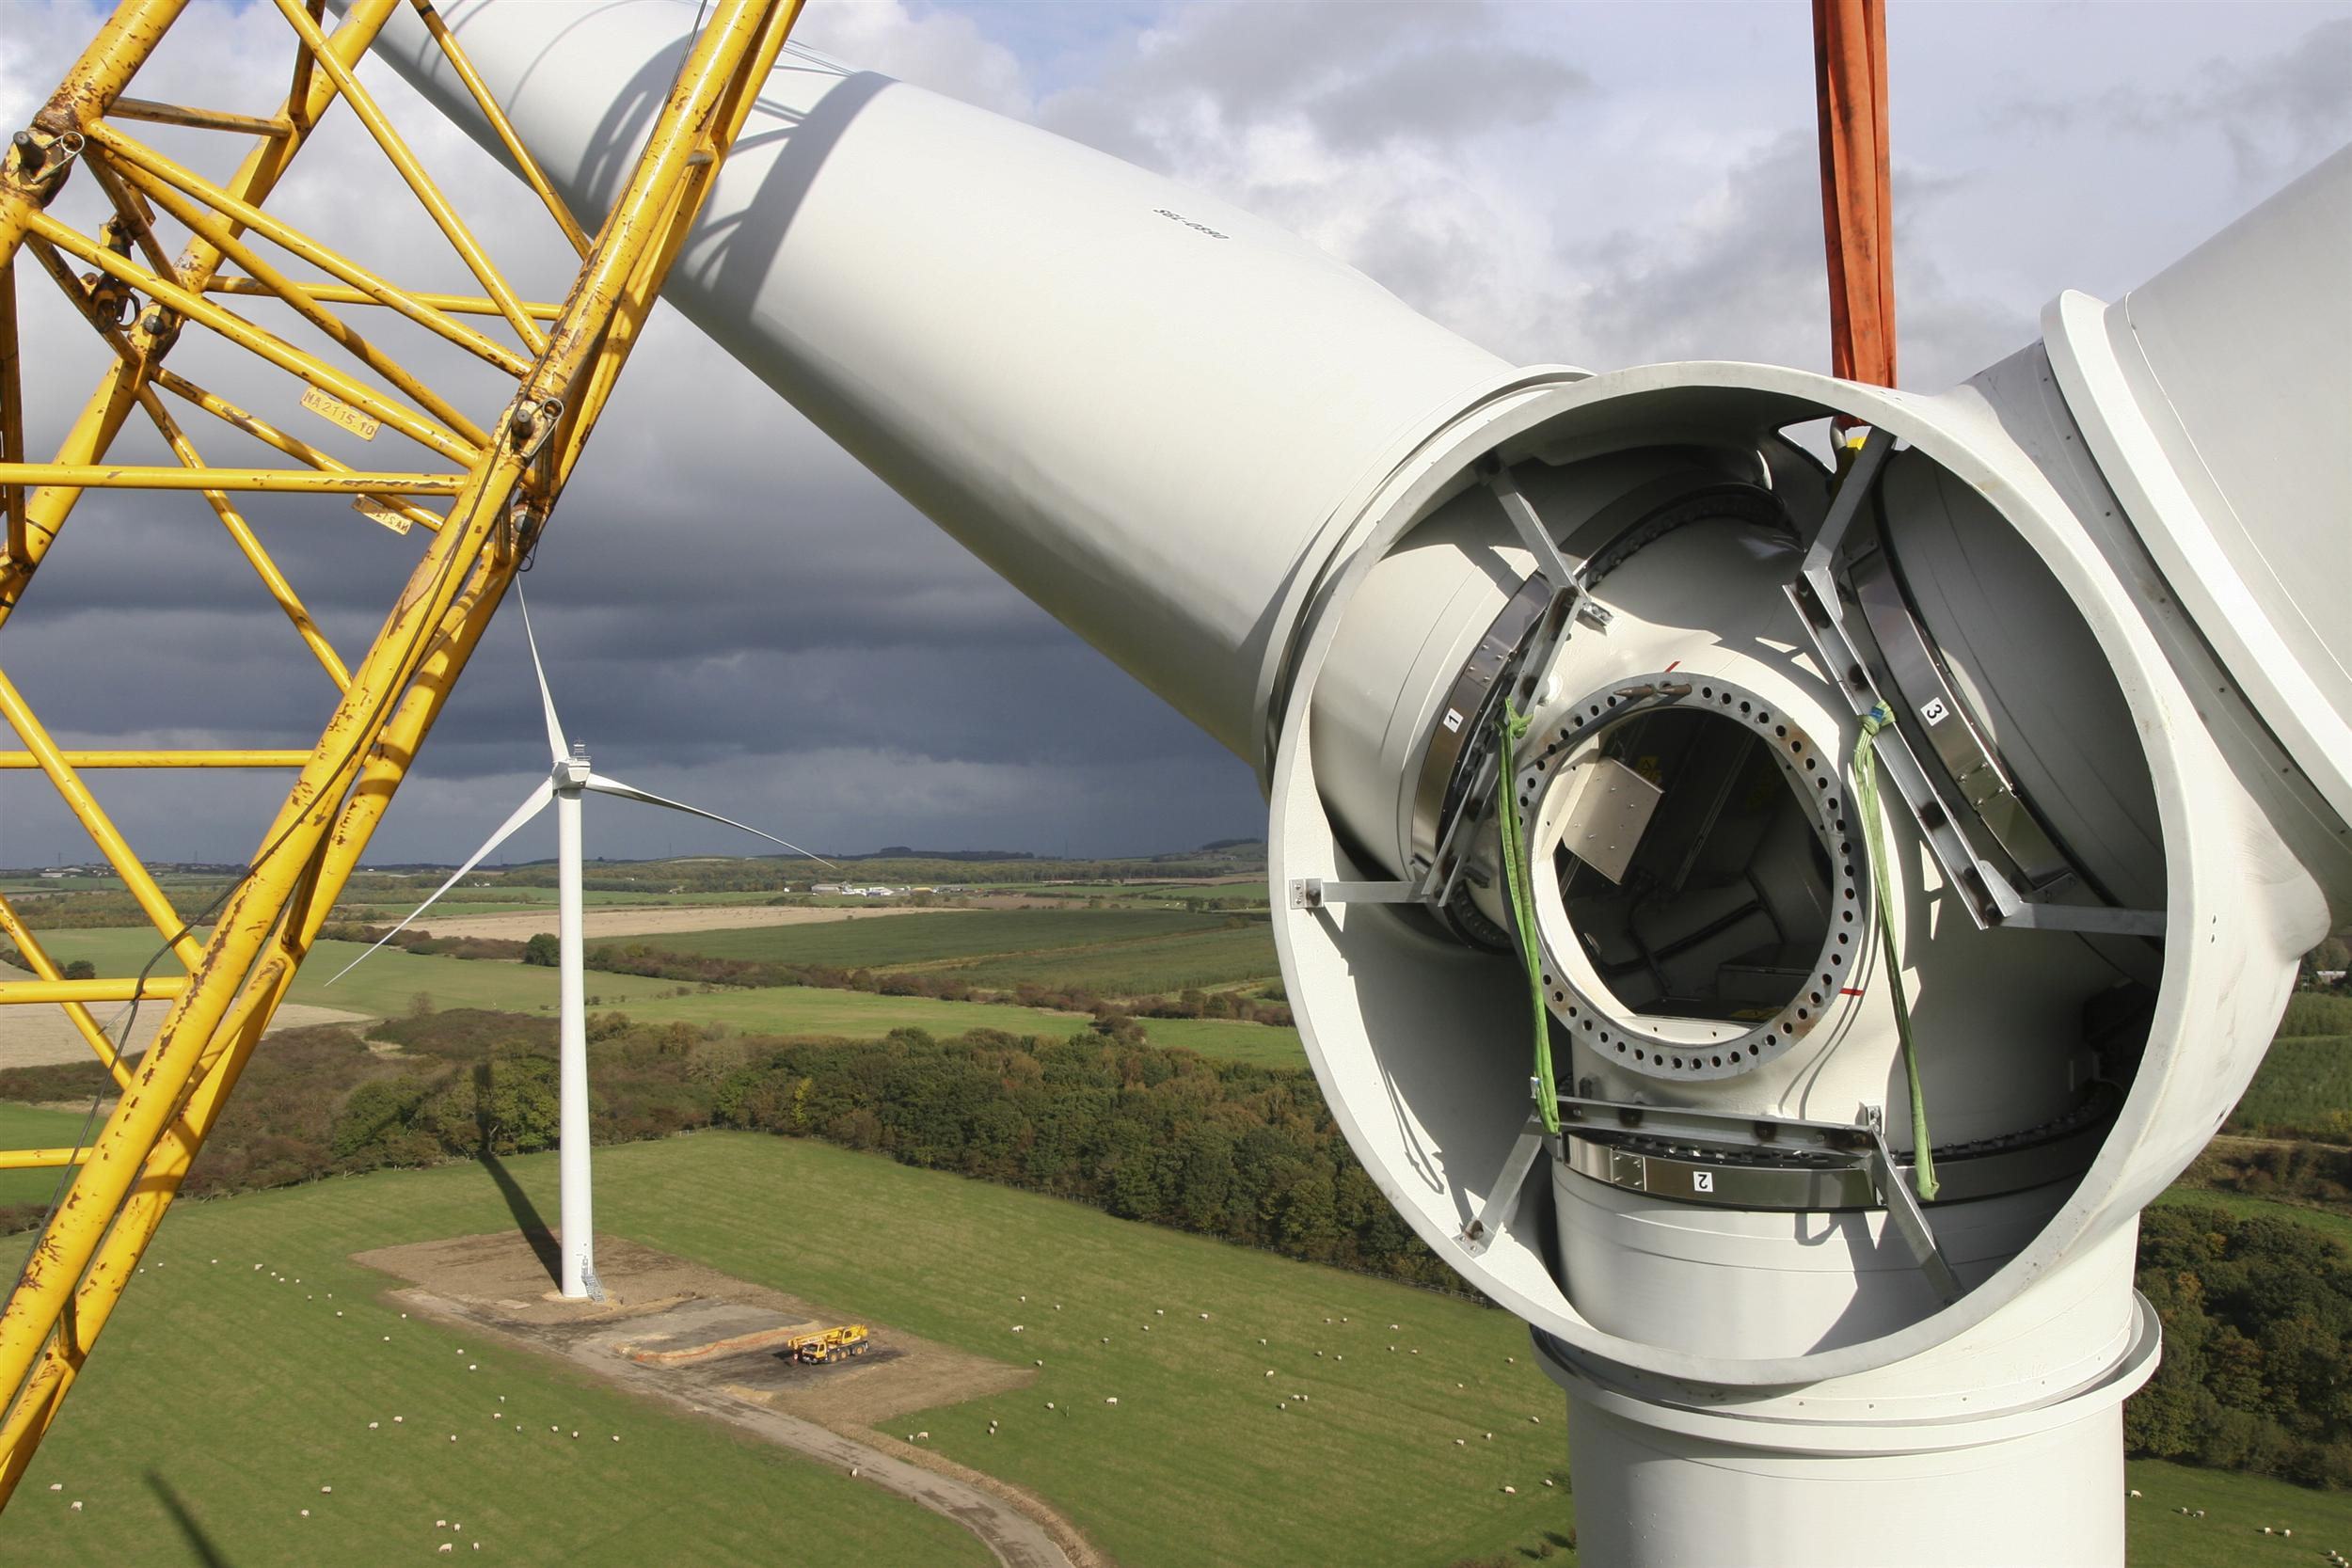 Close up of the insides of a wind turbine during construction at a wind farm